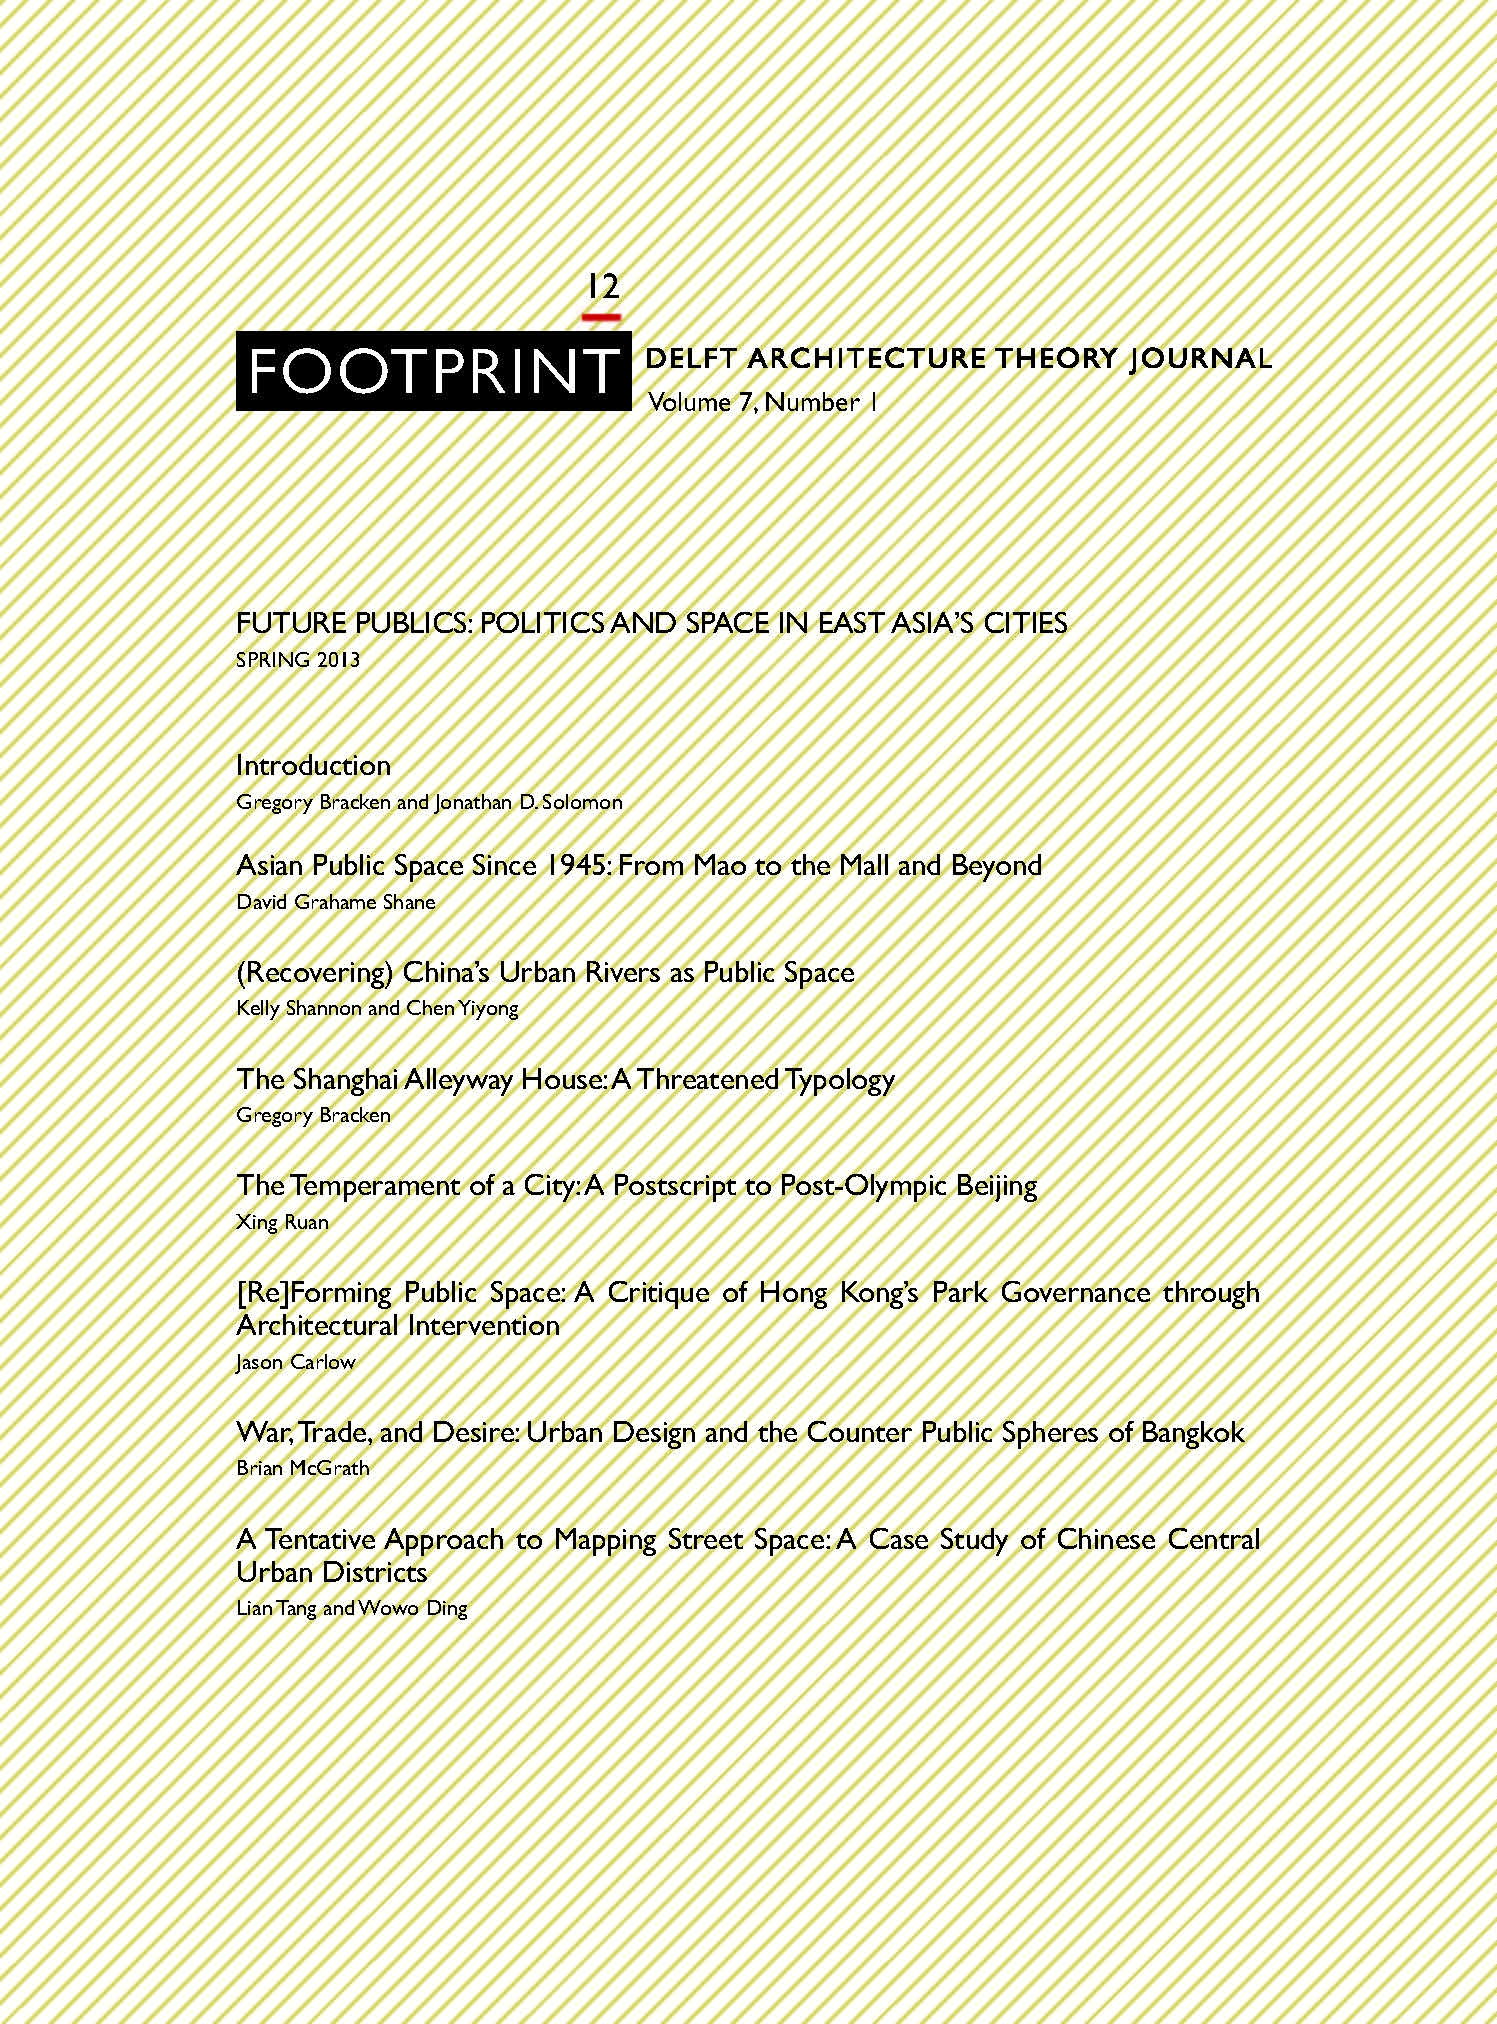 View Issue # 12 | Spring 2013 | Future Publics: Politics and Space in East Asia's Cities